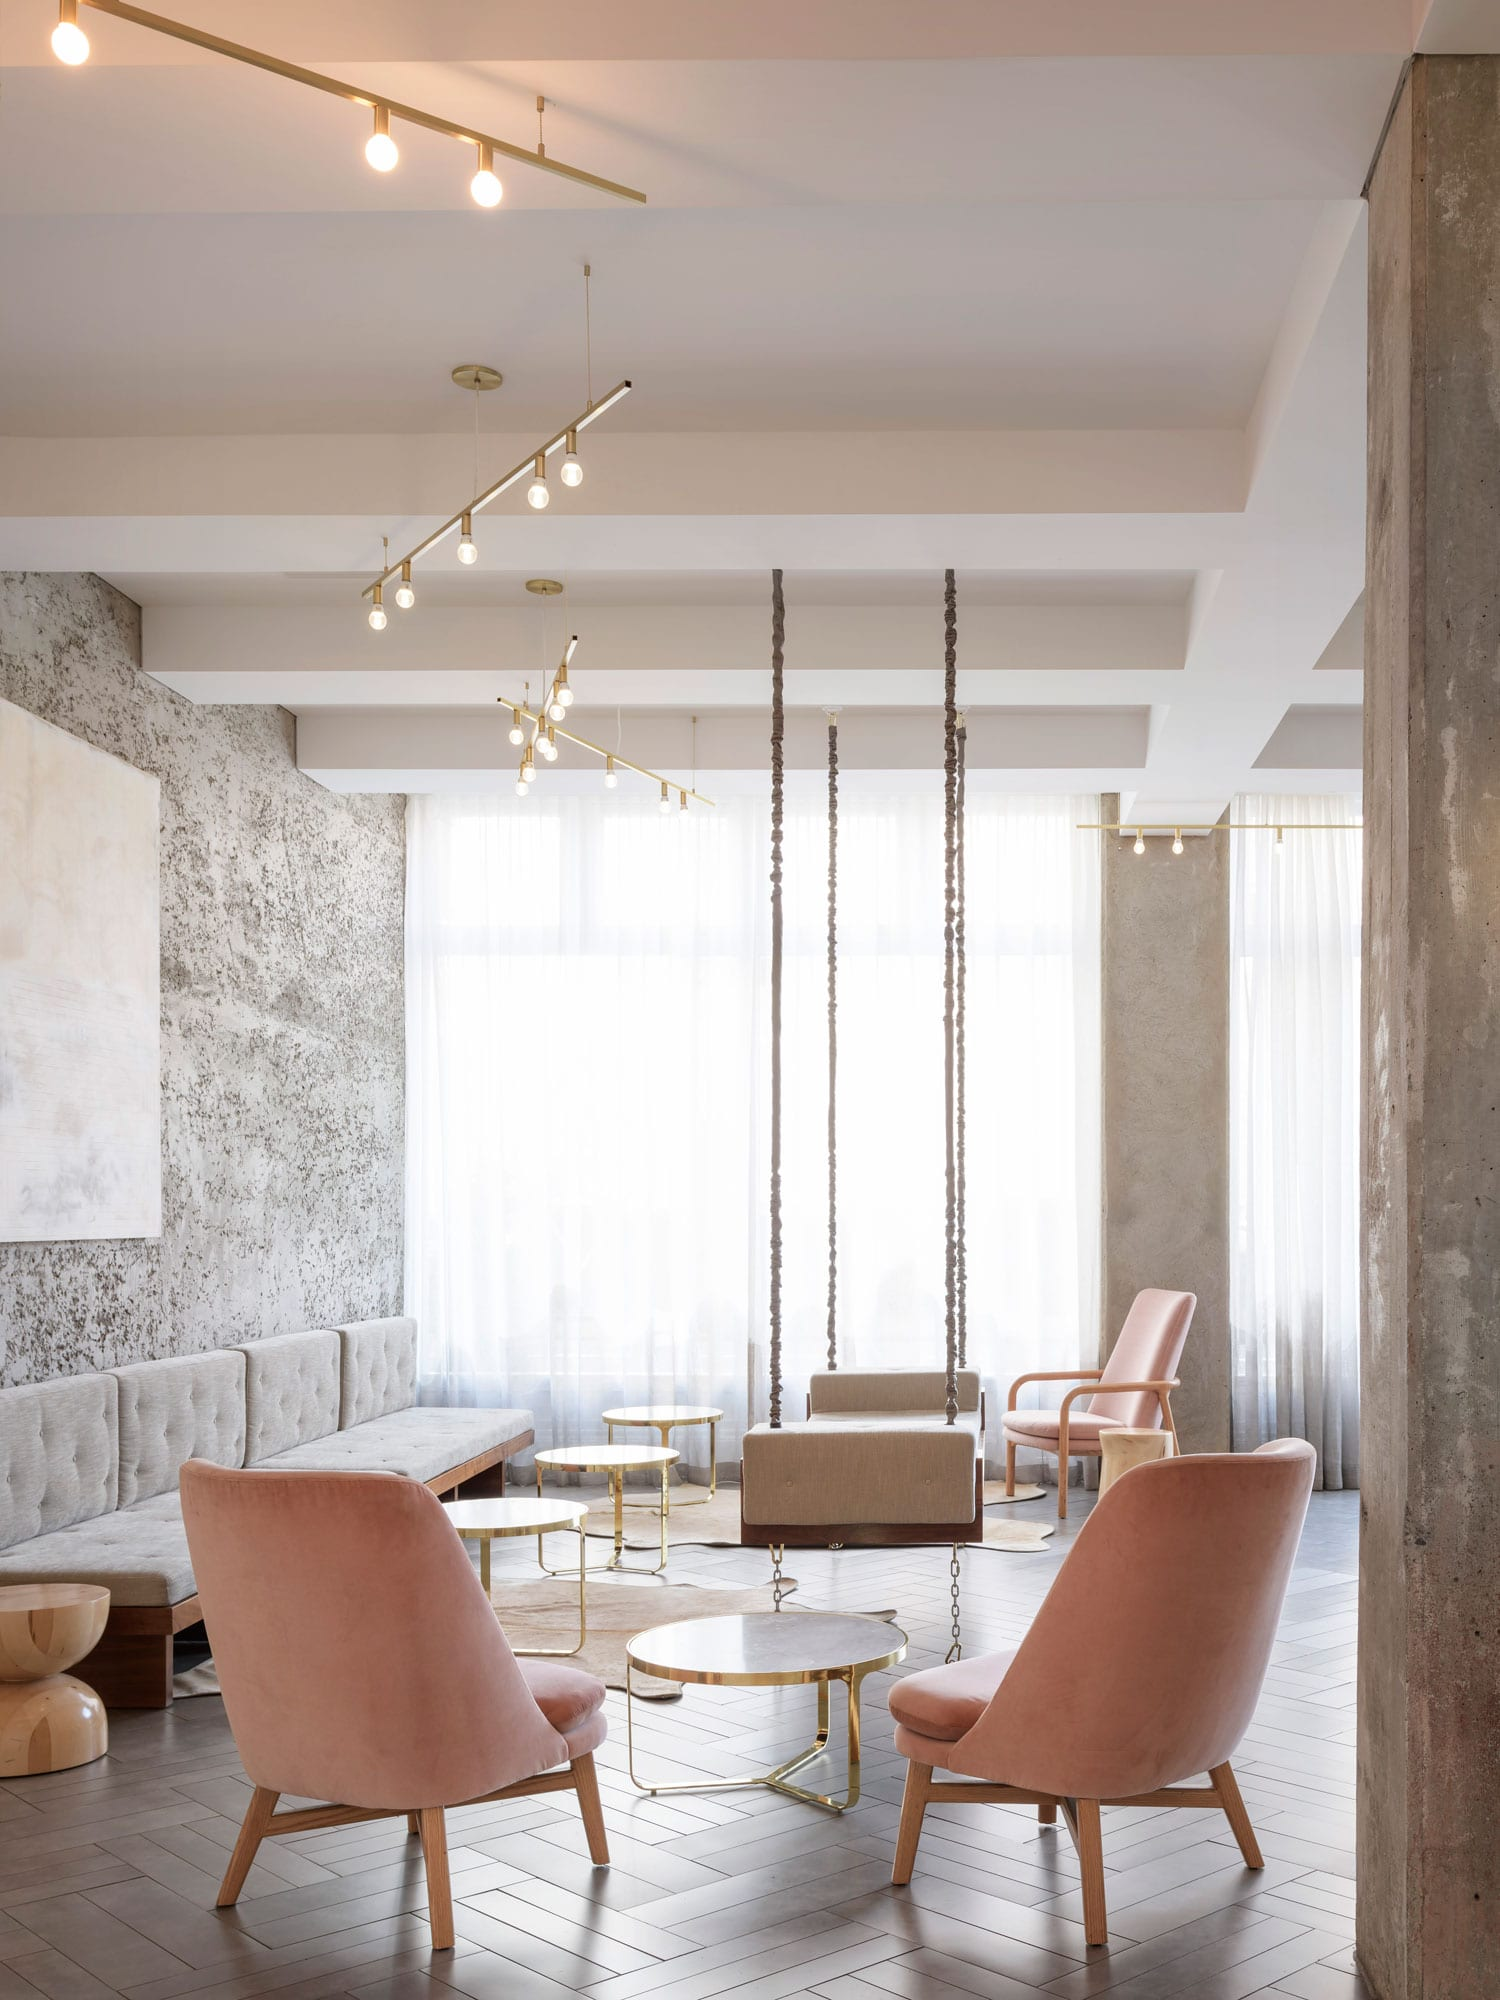 Hotel Lobbies and Waiting Spaces: A List Of 20 Modern Armchairs  modern armchairs Hotel Lobbies And Waiting Spaces: A List Of 20 Modern Armchairs Hotel Lobbies and Waiting Spaces A List Of 20 Modern Armchairs 18